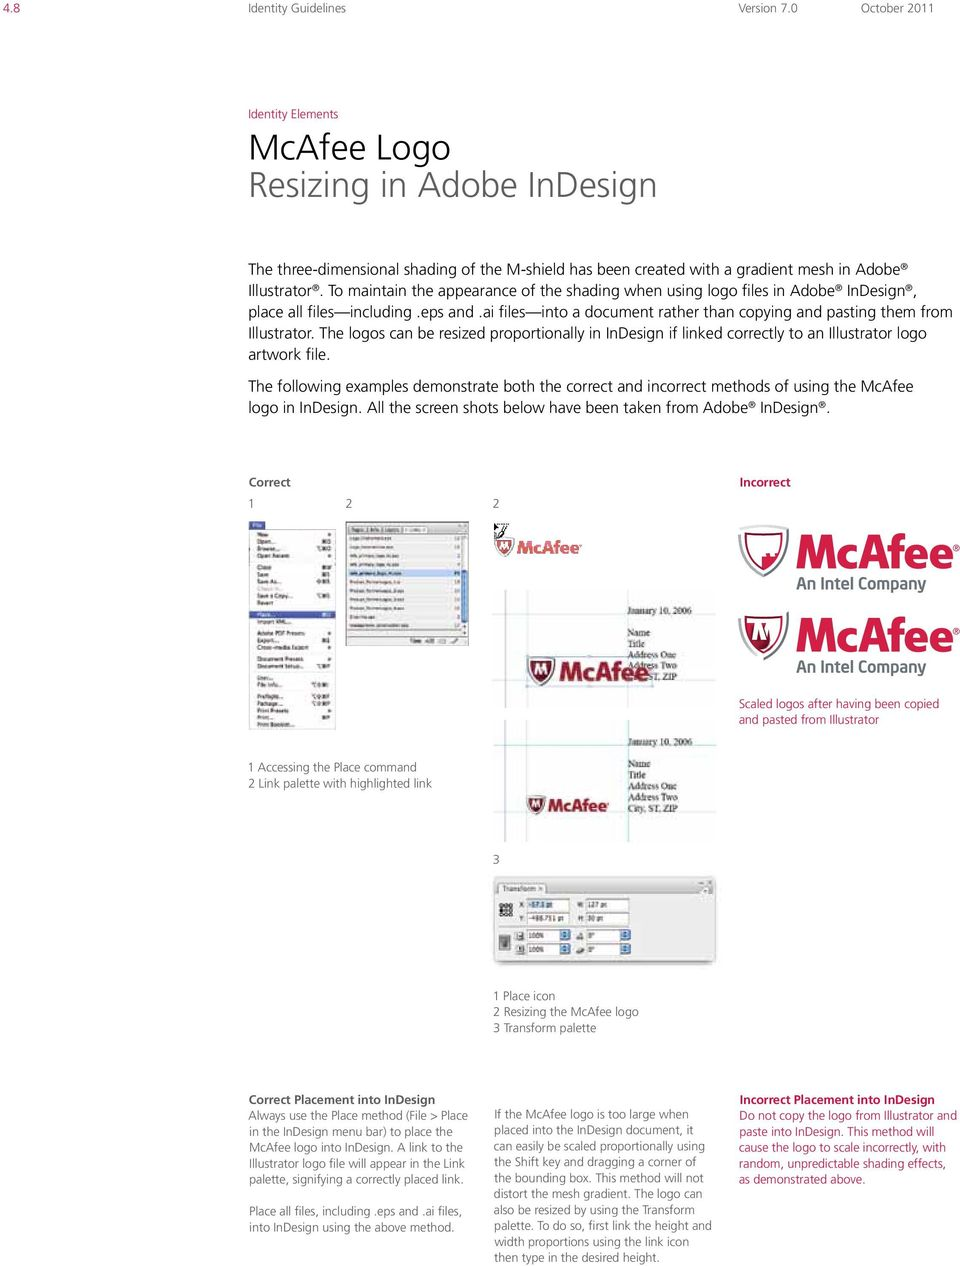 The logos can be resized proportionally in InDesign if linked correctly to an Illustrator logo artwork file.